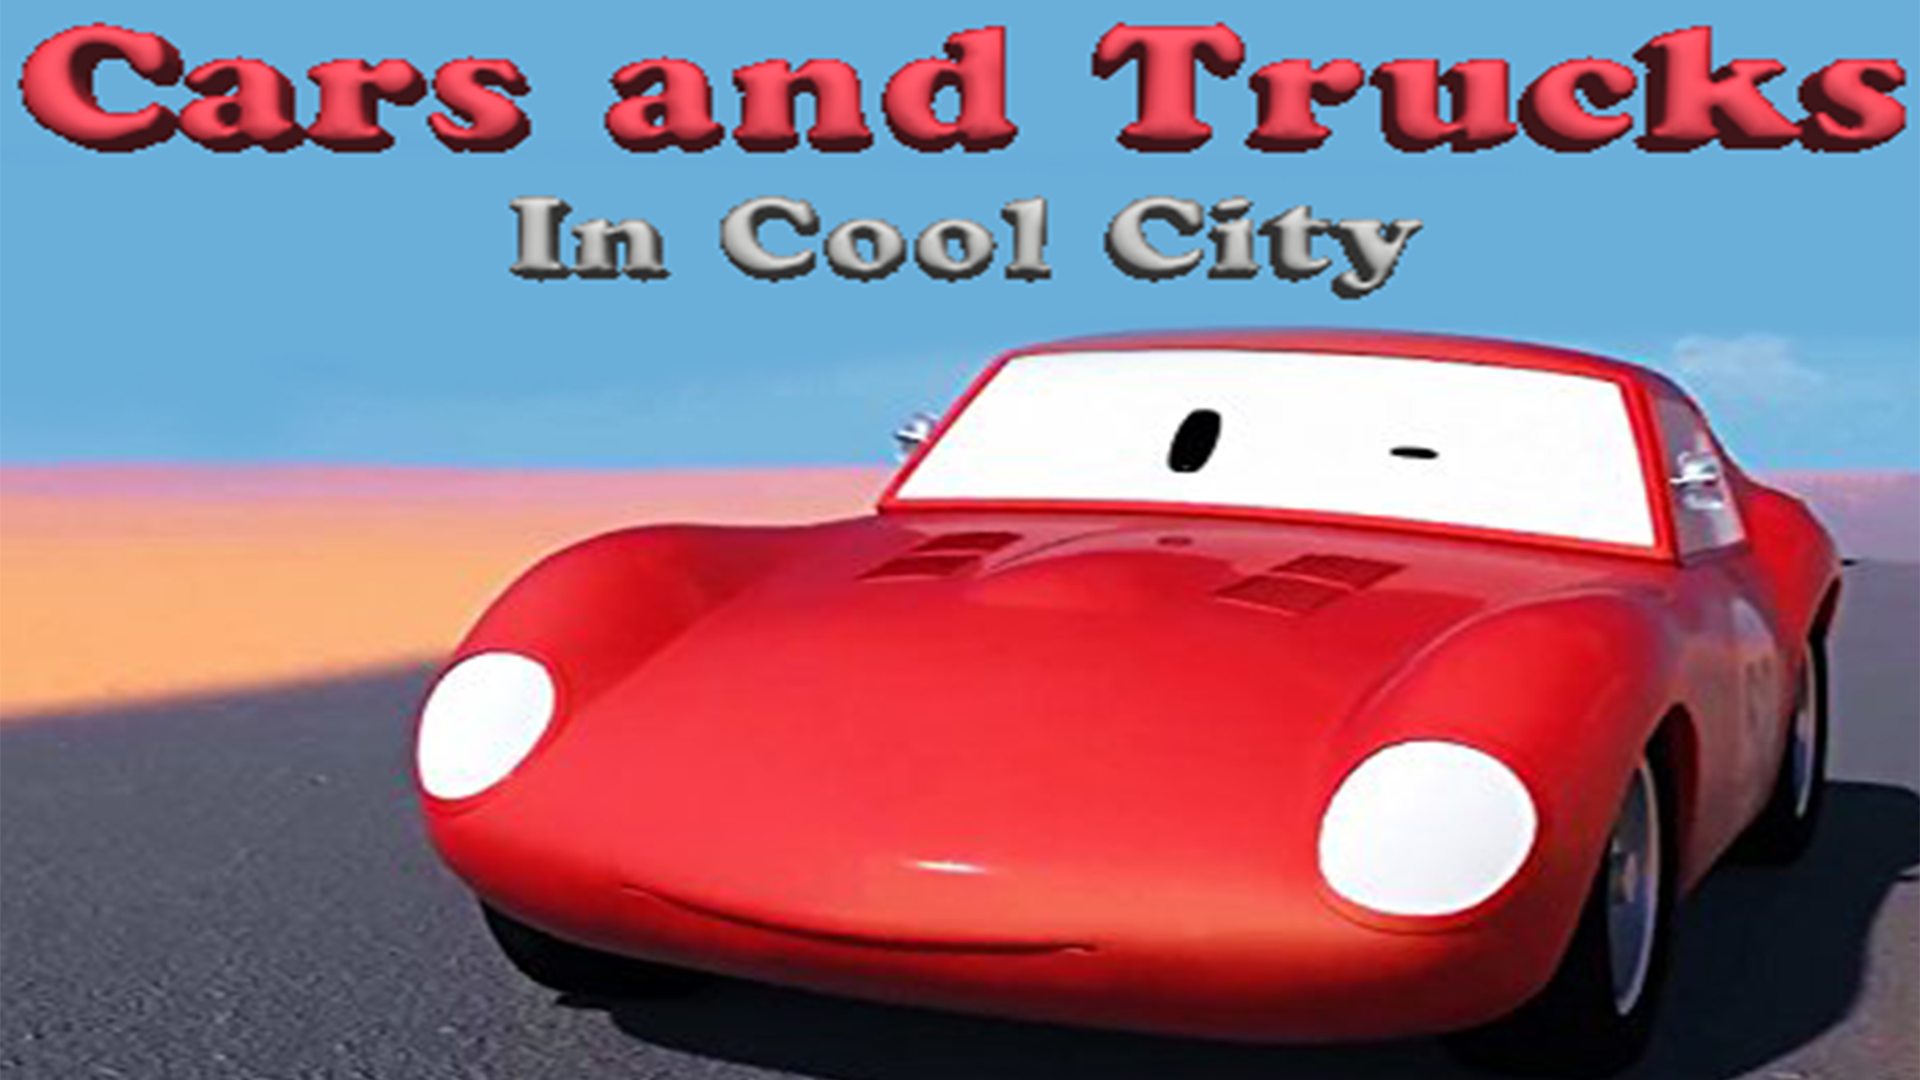 Cars and Trucks in Car CIty